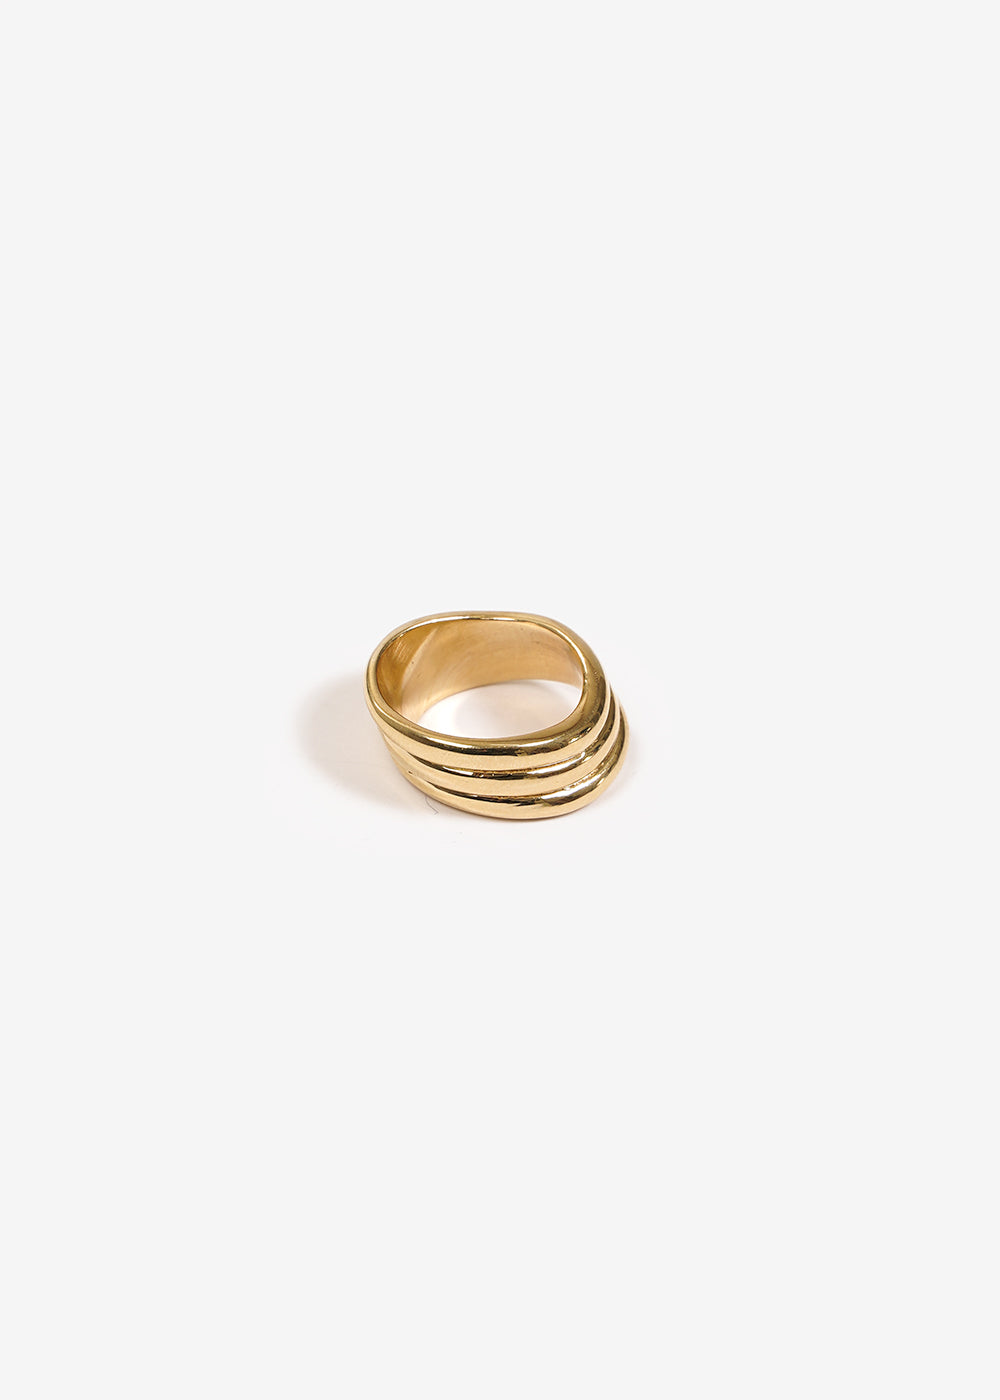 LUINY Waves Ring No. 2 — New Classics Studios